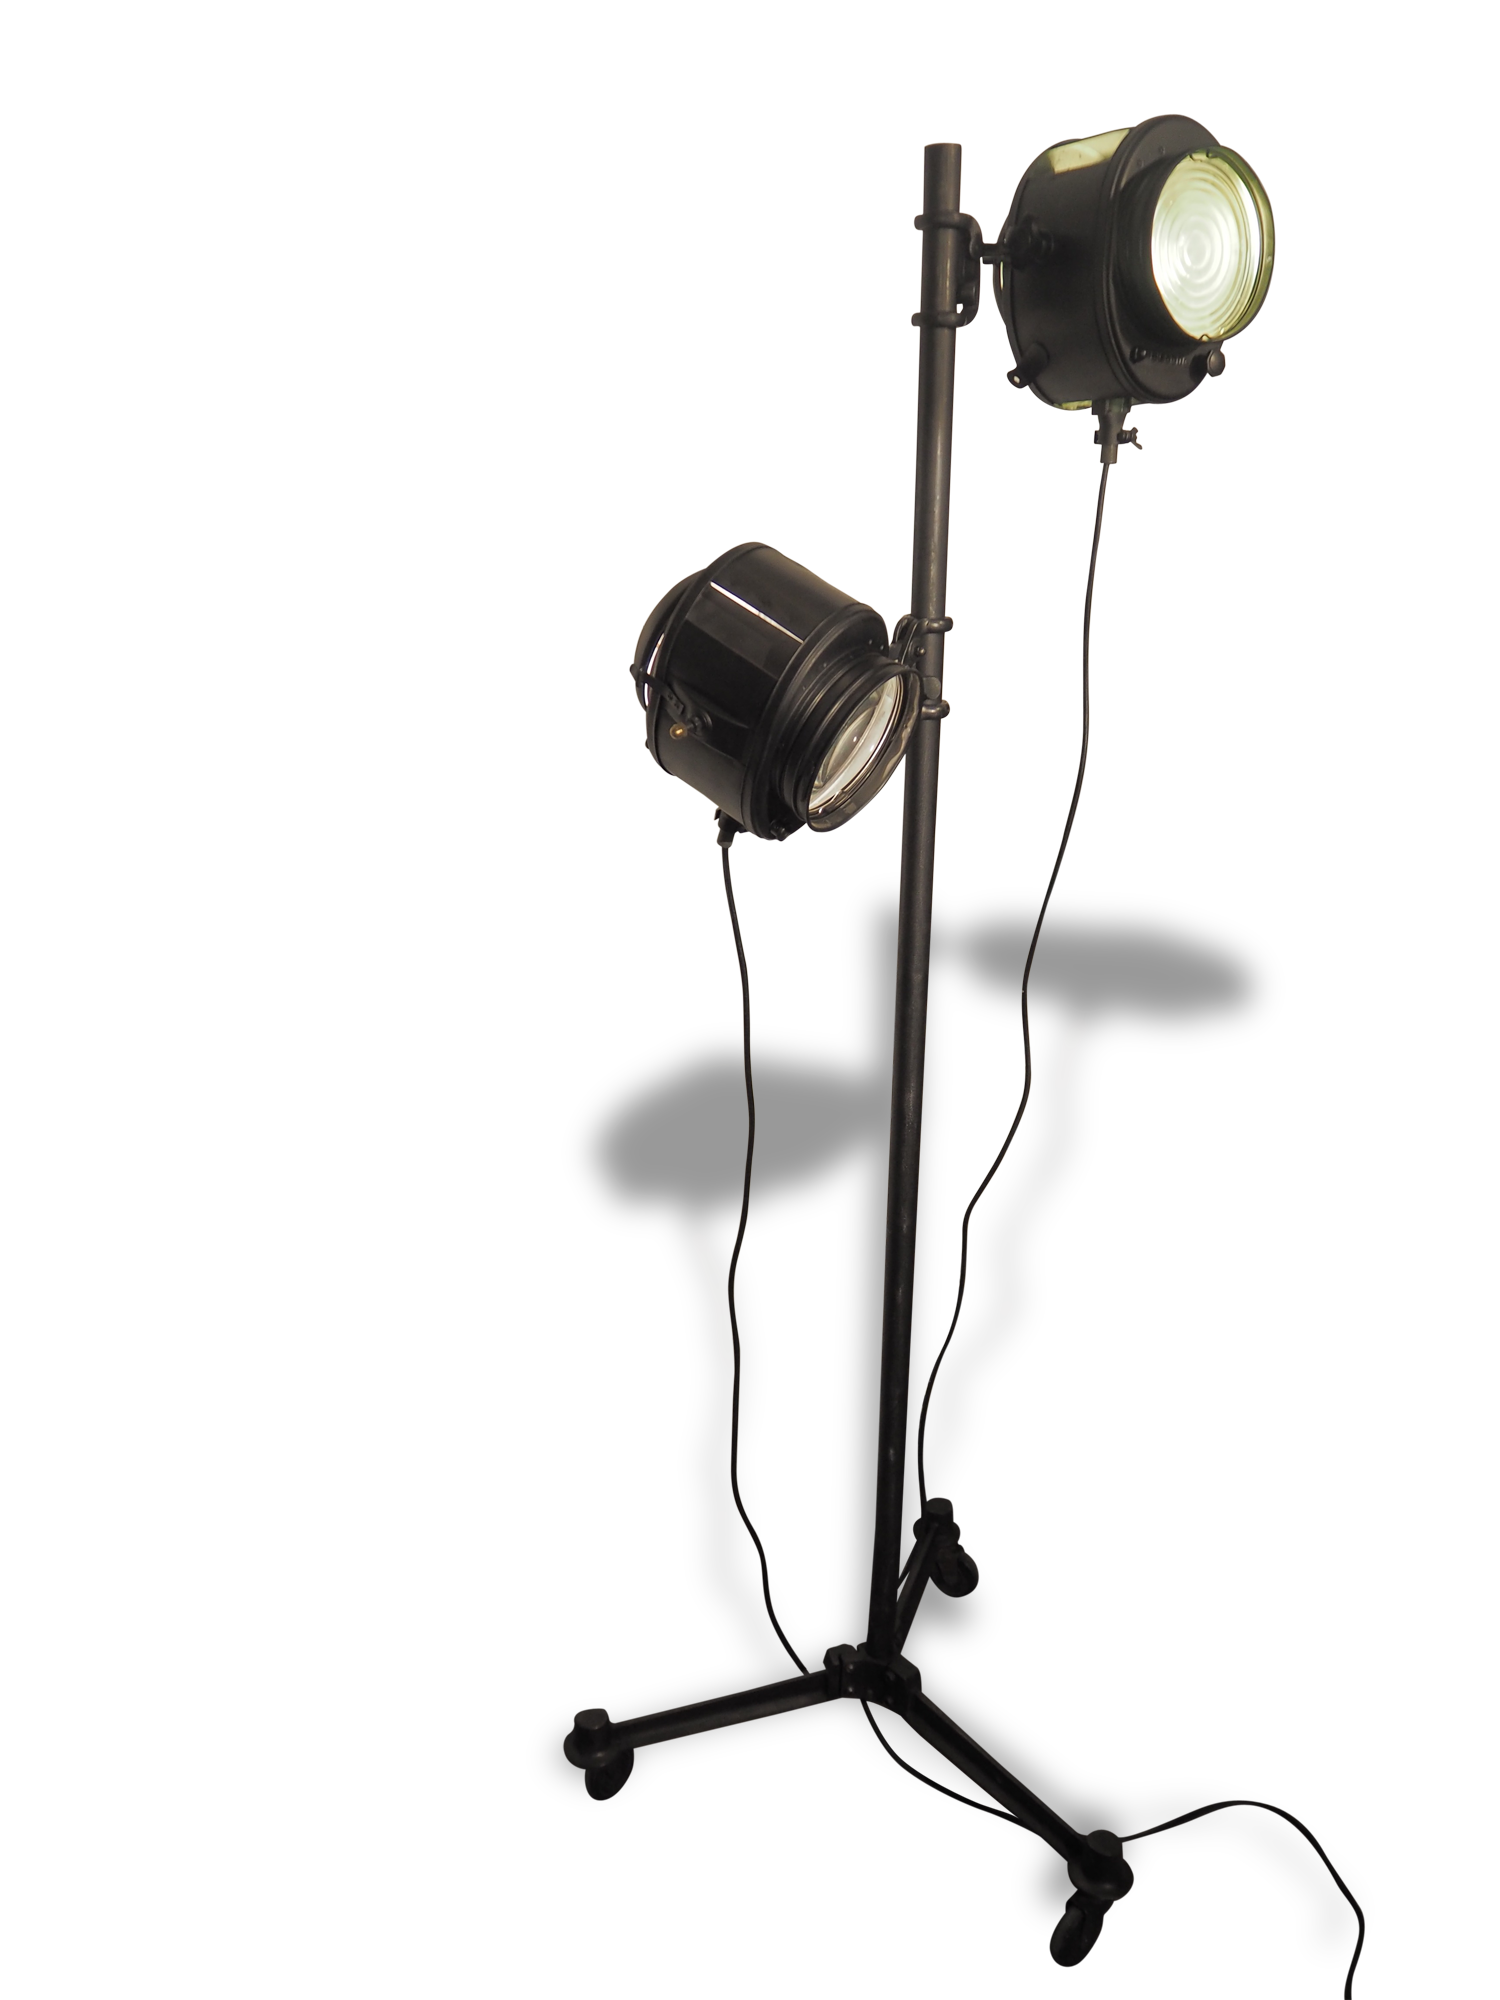 Projecteur cinema cremer lampadaire double